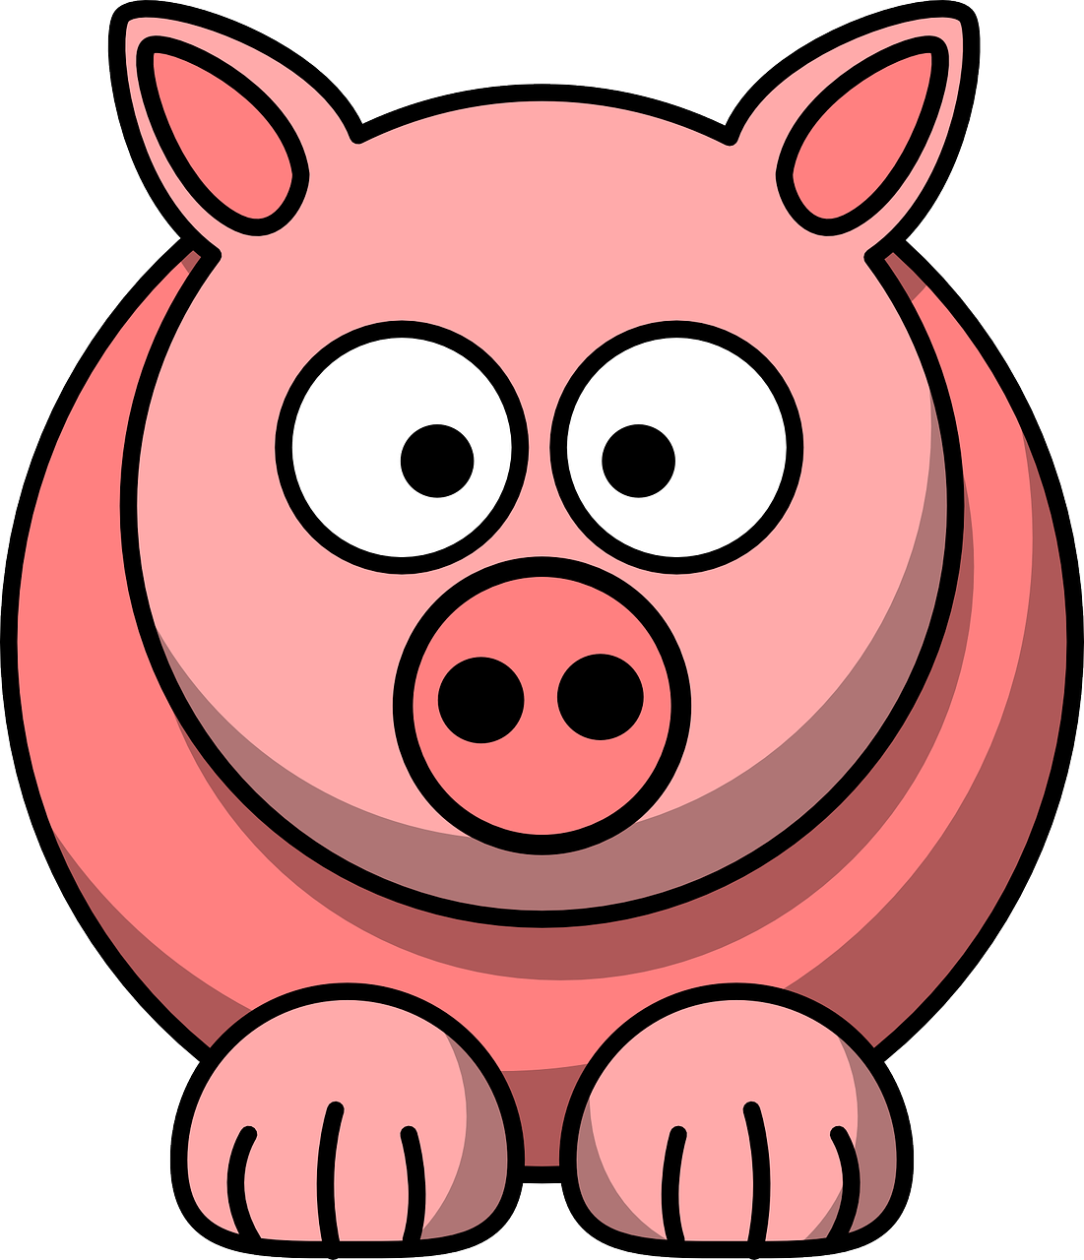 Pig clipart shadow. Face silhouette at getdrawings